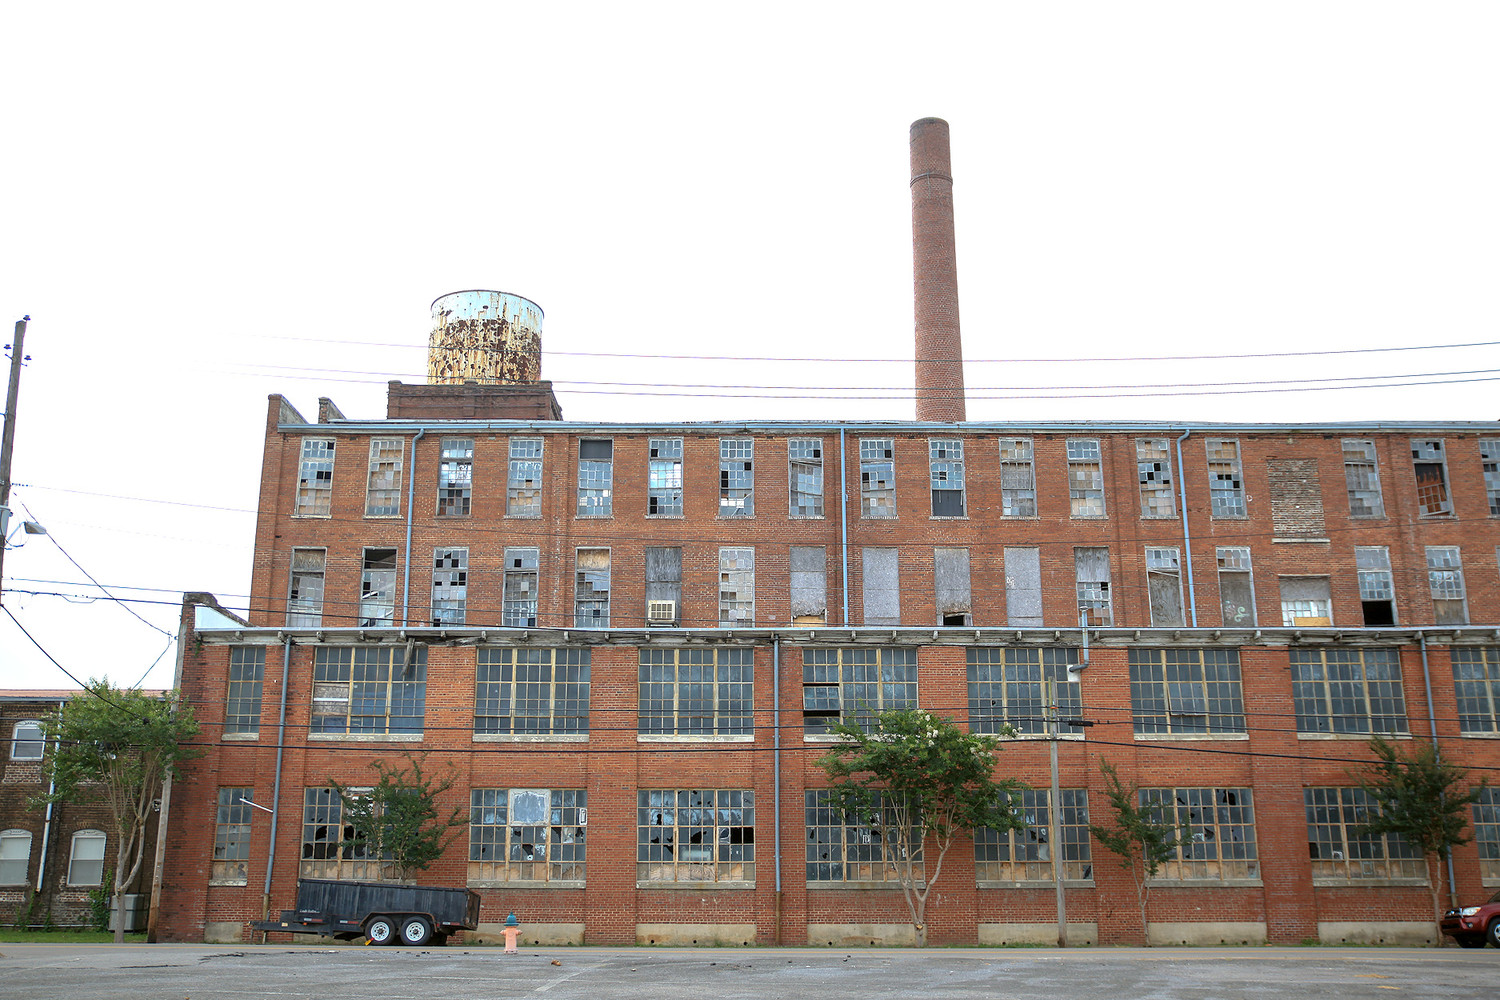 ABOVE IS AN EXTERIOR view of the historic Old Woolen Mill in South Cleveland, located just west of the old Whirlpool Plant property. May's building permits included two permits for this property, one for a new roof, and a second for renovation of office space within the building.